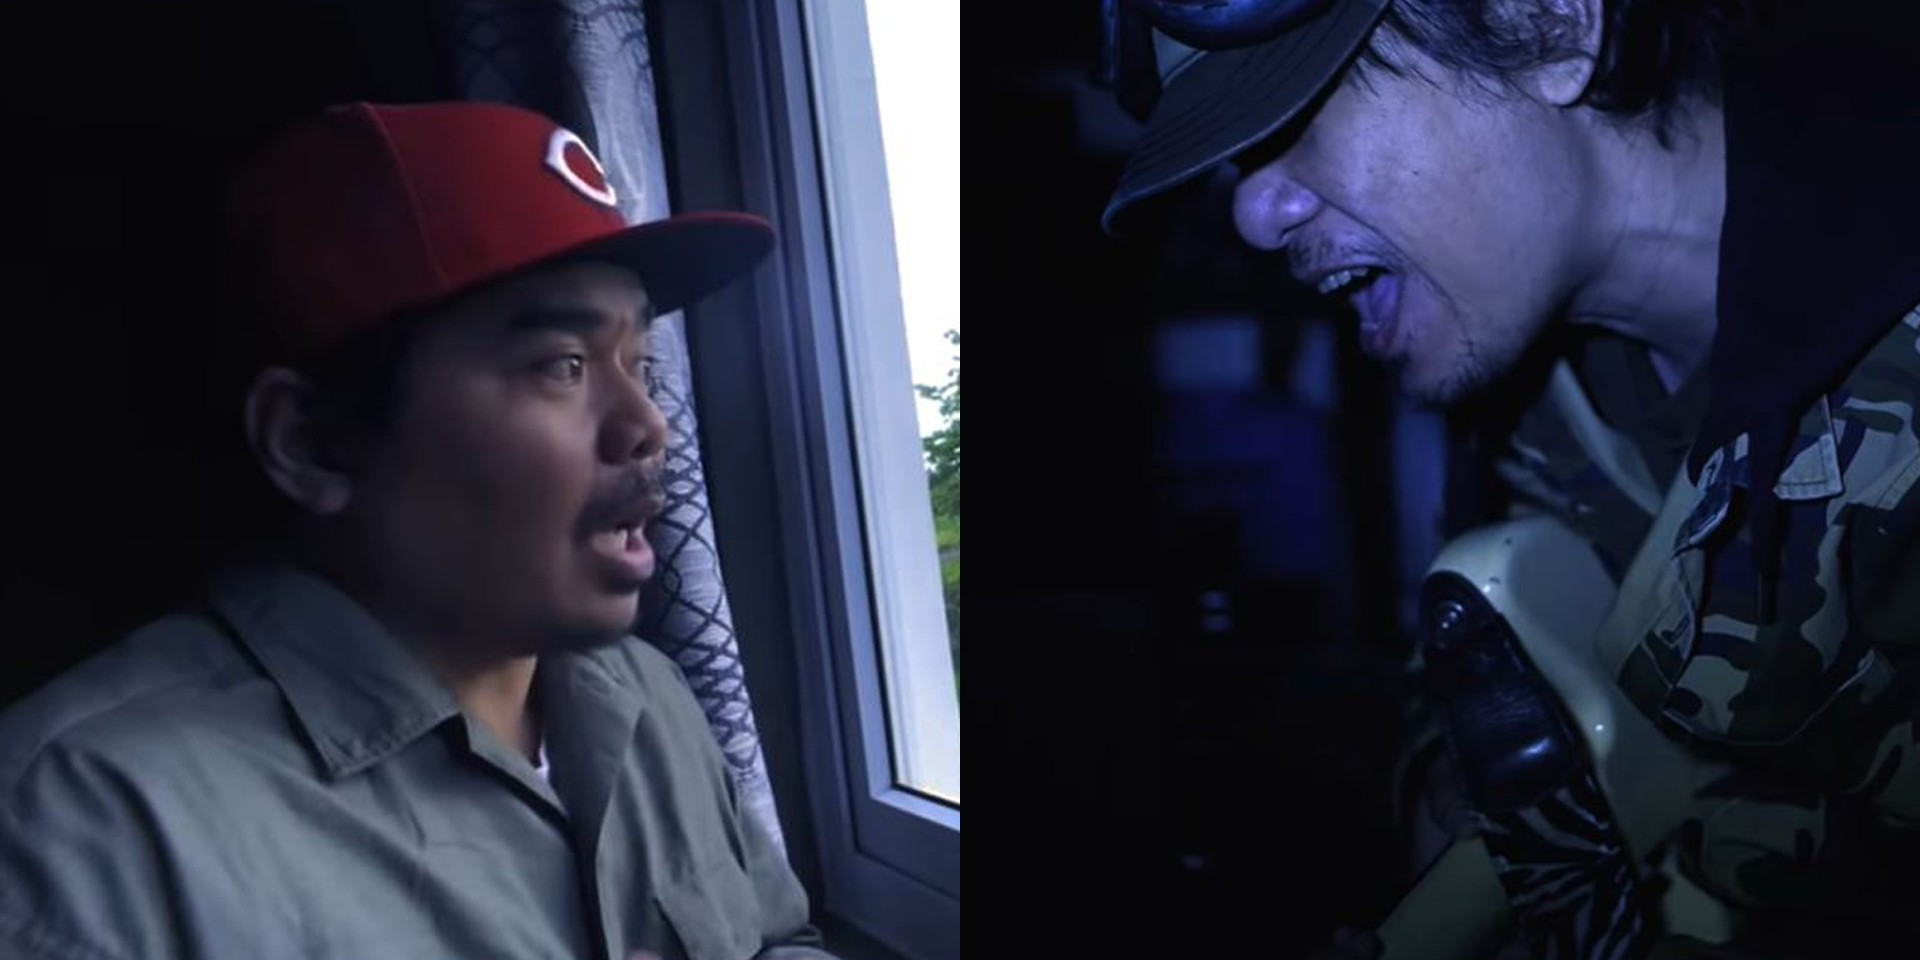 Gloc-9 and Raymund Marasigan tackle the struggles Filipinos face in lockdown with new single 'Gera Gera' – watch